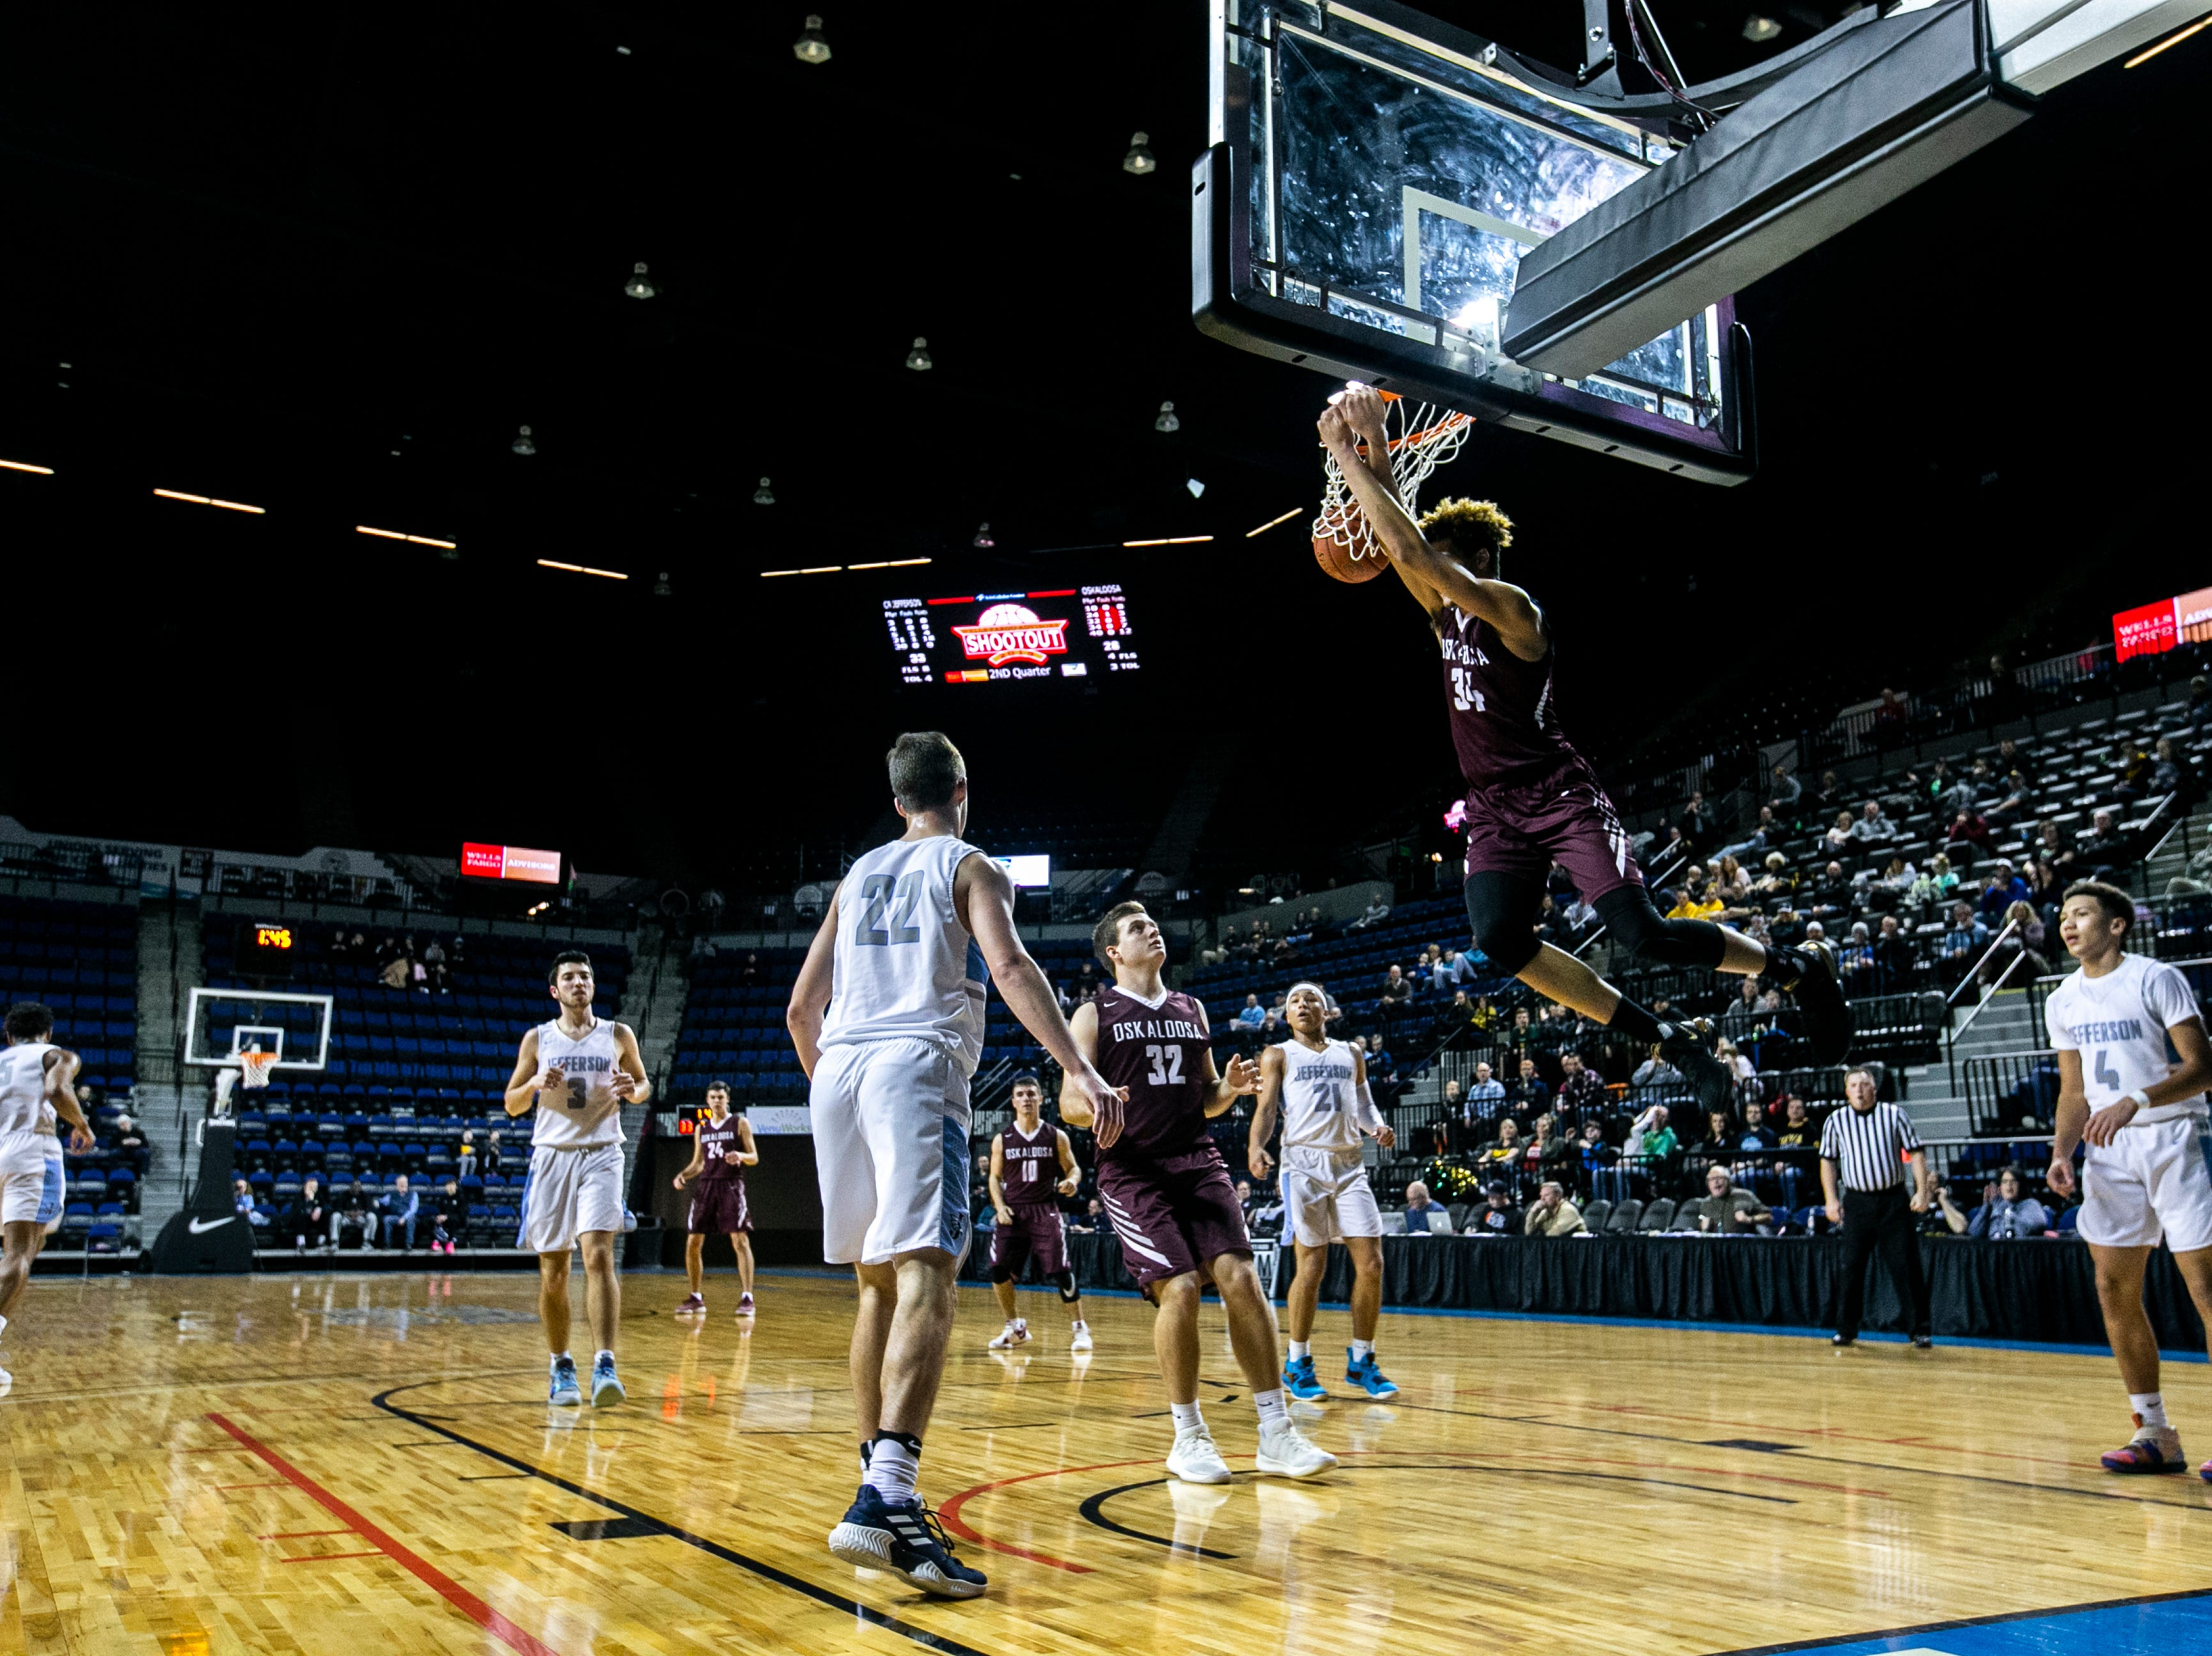 Oskaloosa's Xavier Foster (34) dunks during a boys' basketball game in the Wells Fargo Advisors Shootout on Saturday, Jan. 19, 2019, at the U.S. Cellular Center in Cedar Rapids, Iowa.